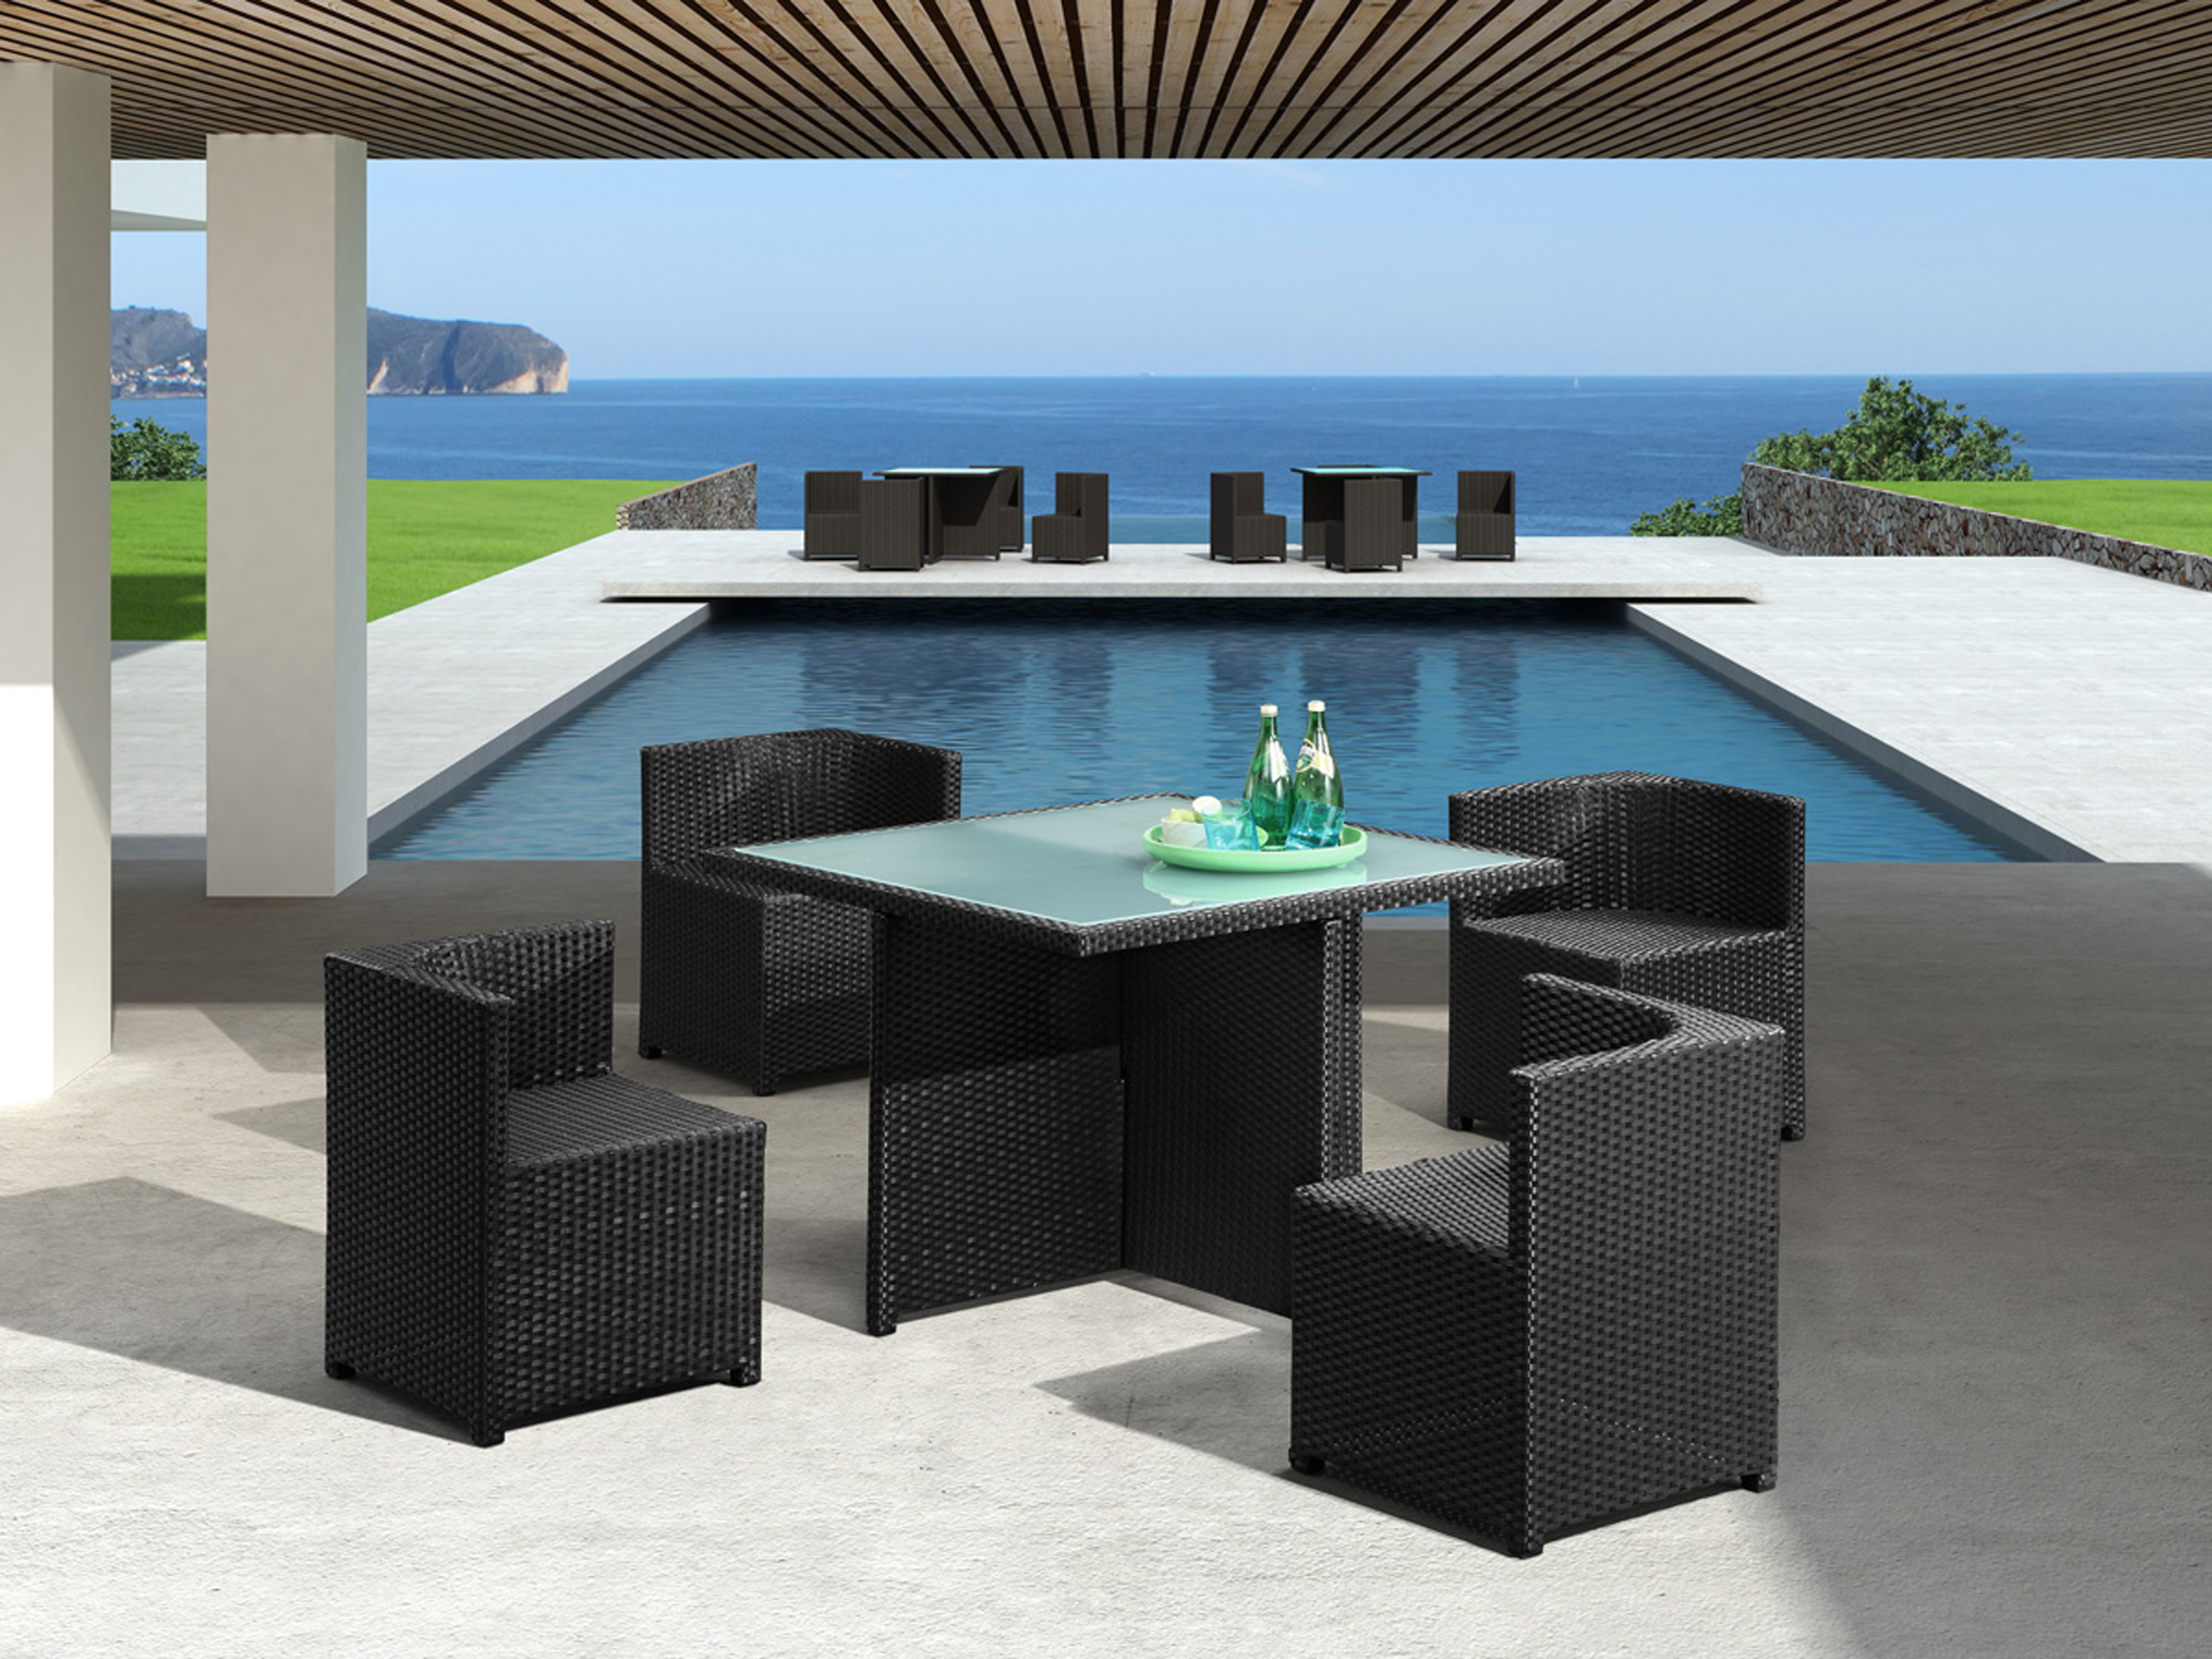 Lovely Outdoor Dining Set Idea With Black Table With Green Bottles And Black Chairs Admirable Outdoor Dining Set Ideas (View 16 of 20)